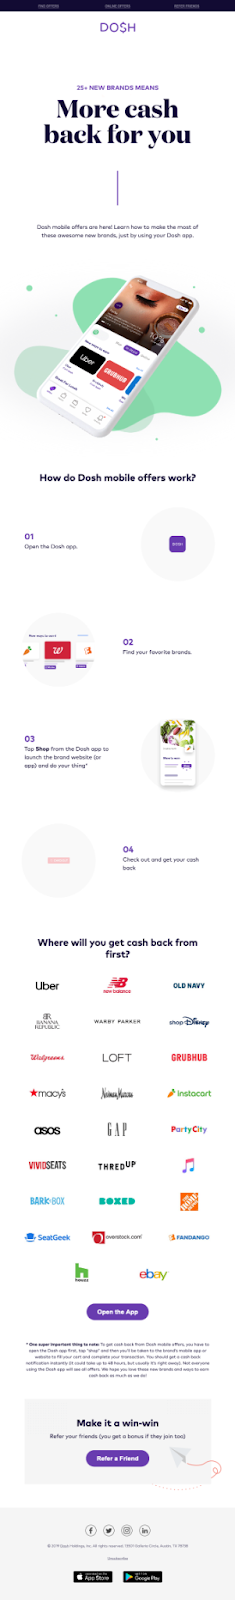 Email Blasts - Example From Dosh App